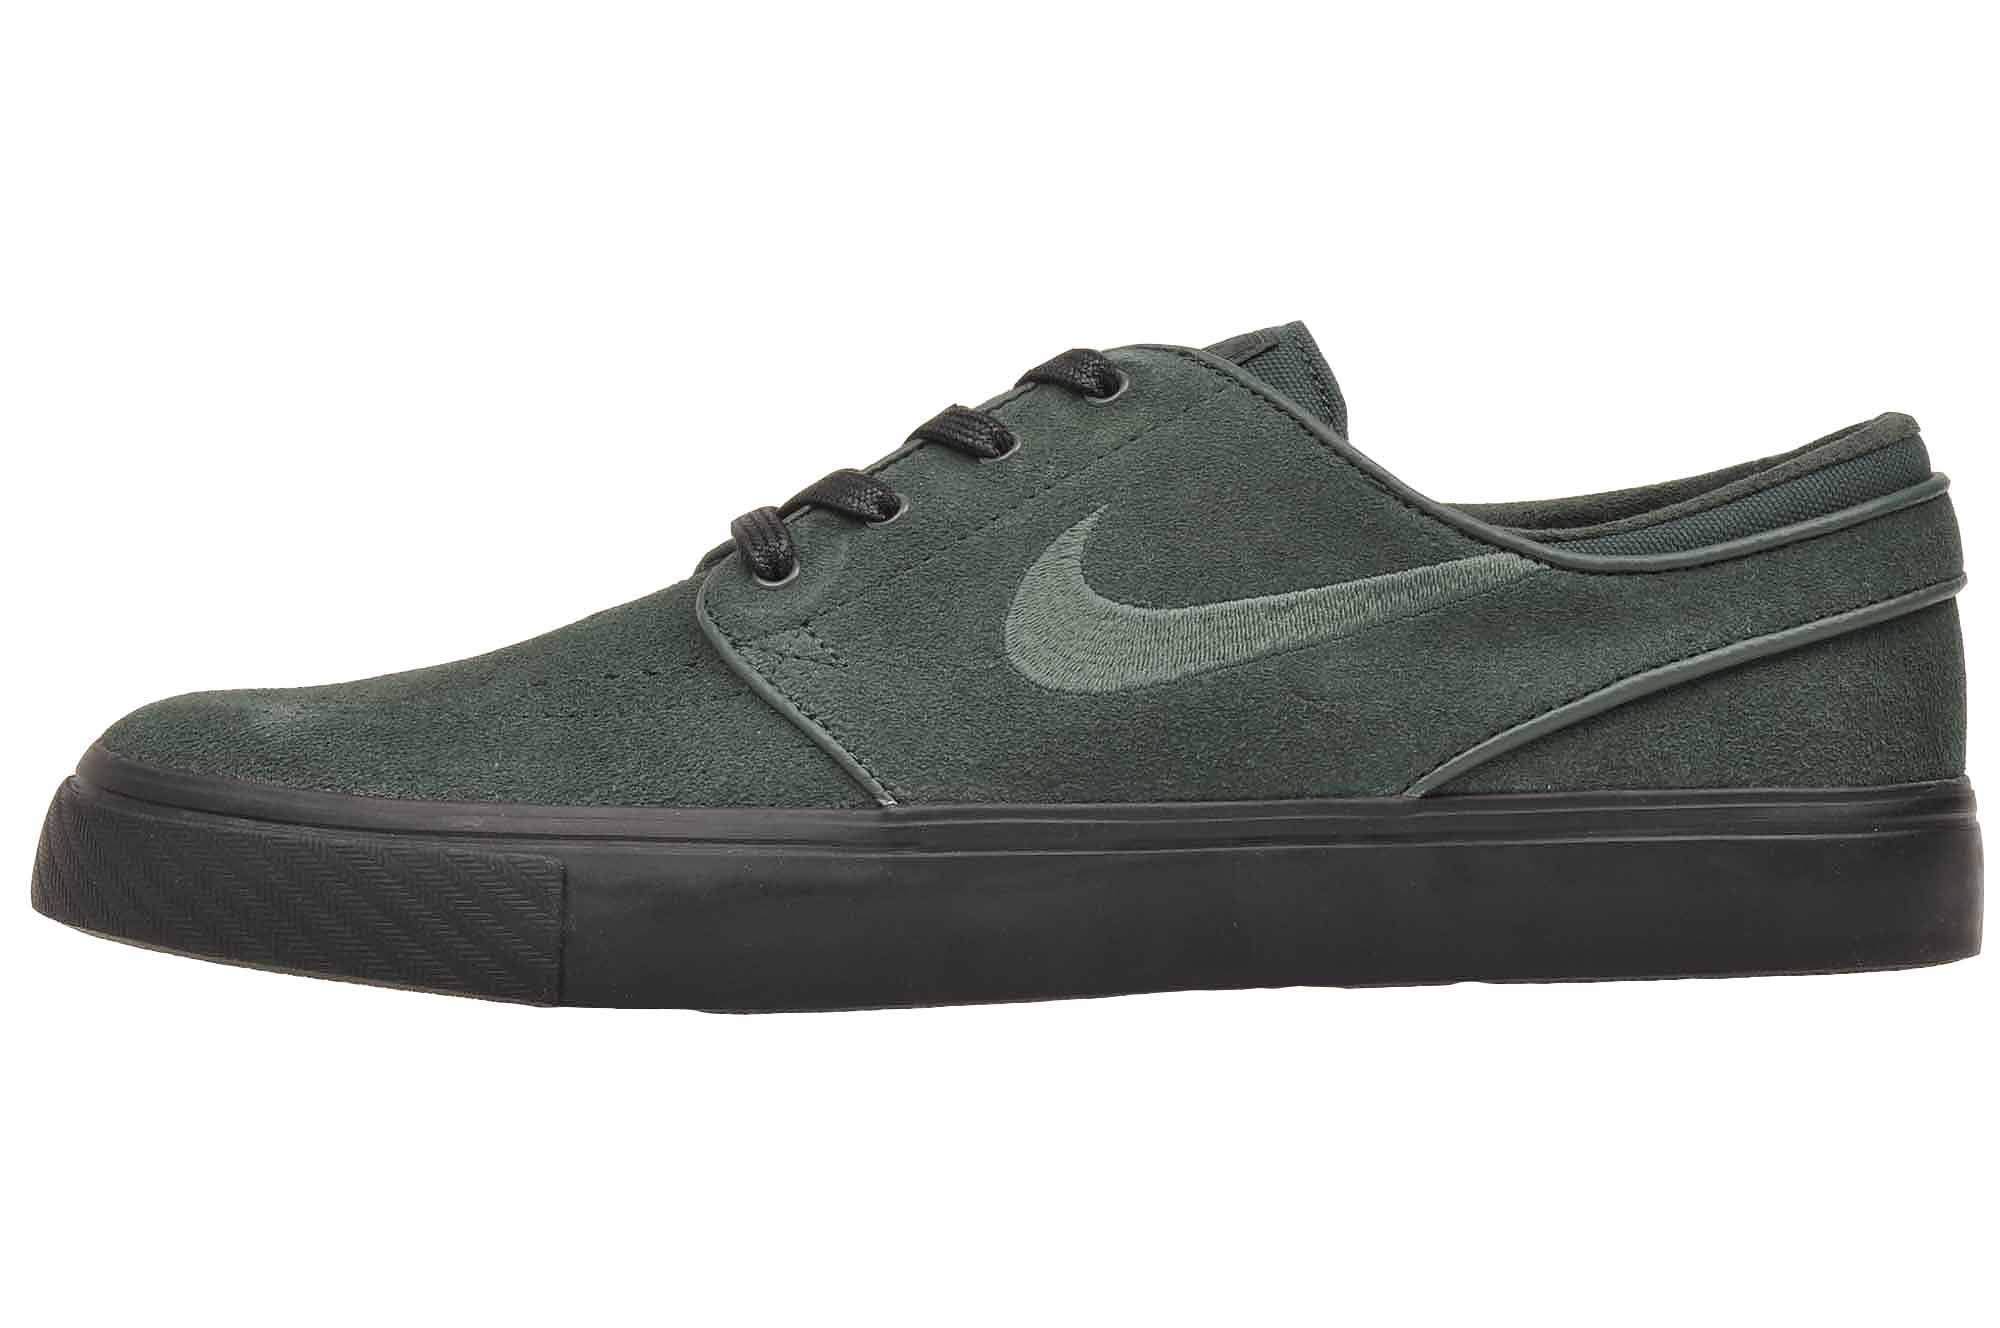 cheap for discount latest fashion later Nike Men's Zoom Stefan Janoski Skateboarding Shoes (Midnight Green/Midnight  Green, 11 D(M) US)